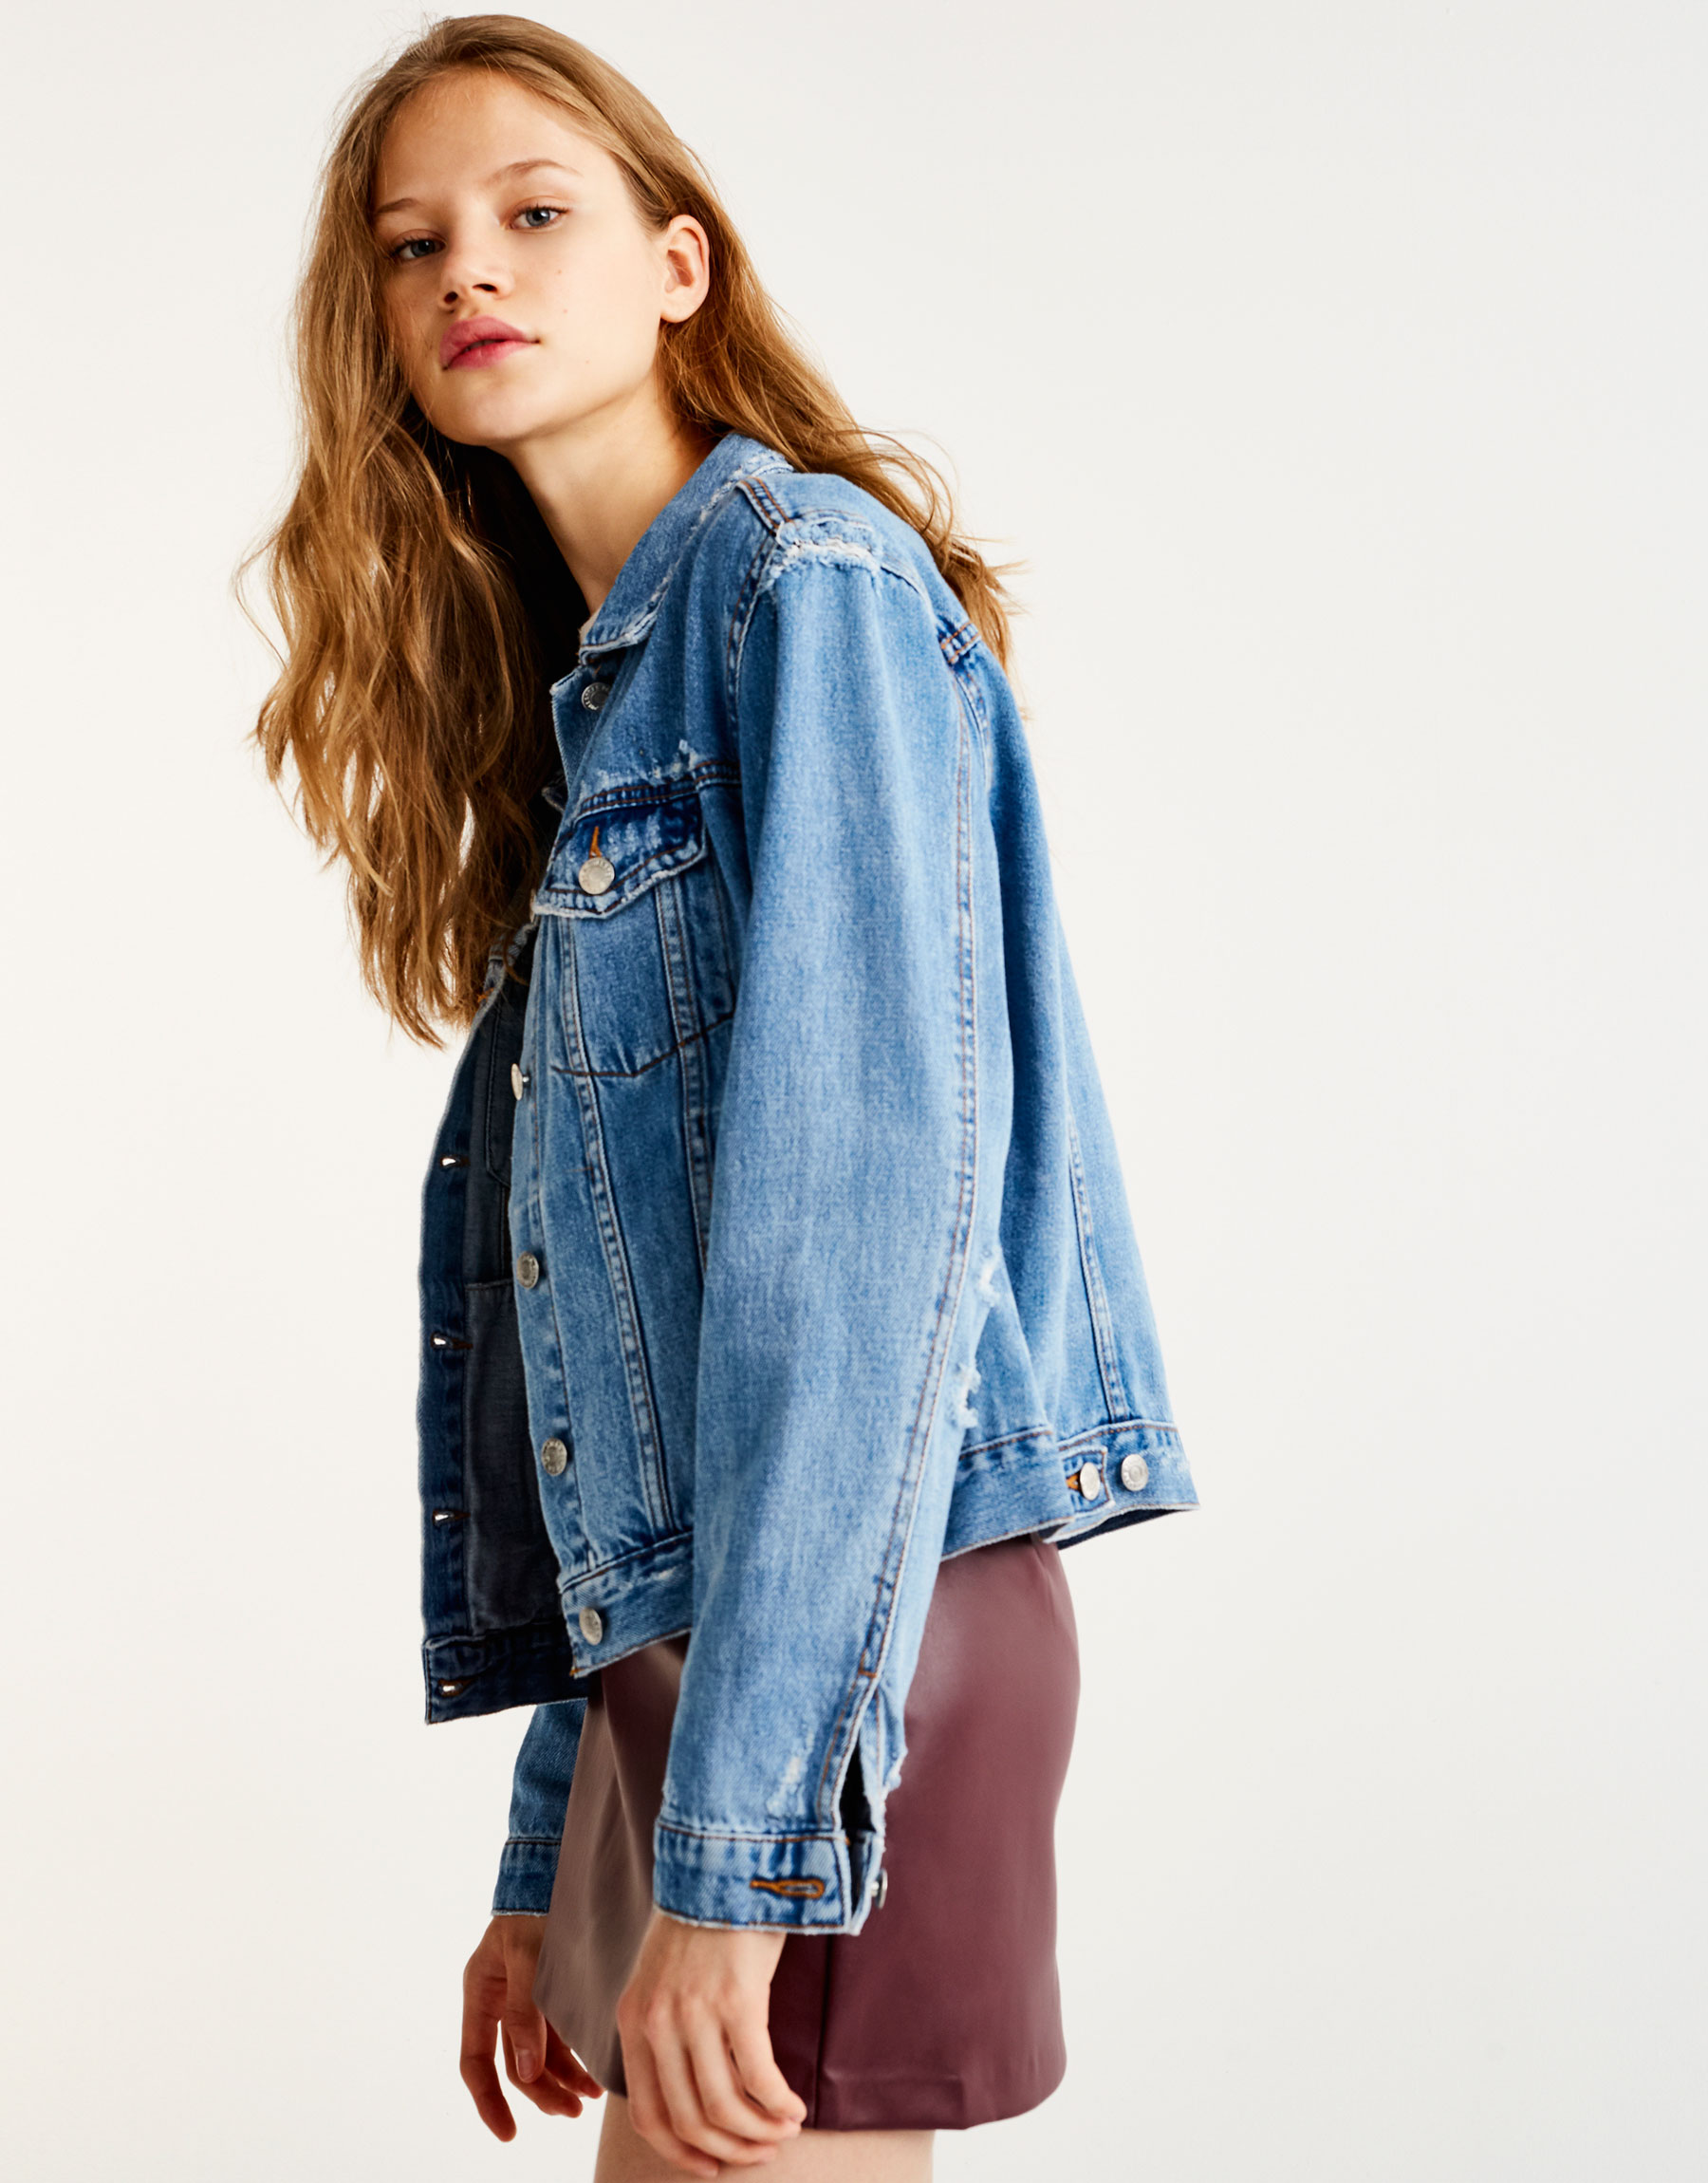 Cazadora denim ajustada rotos